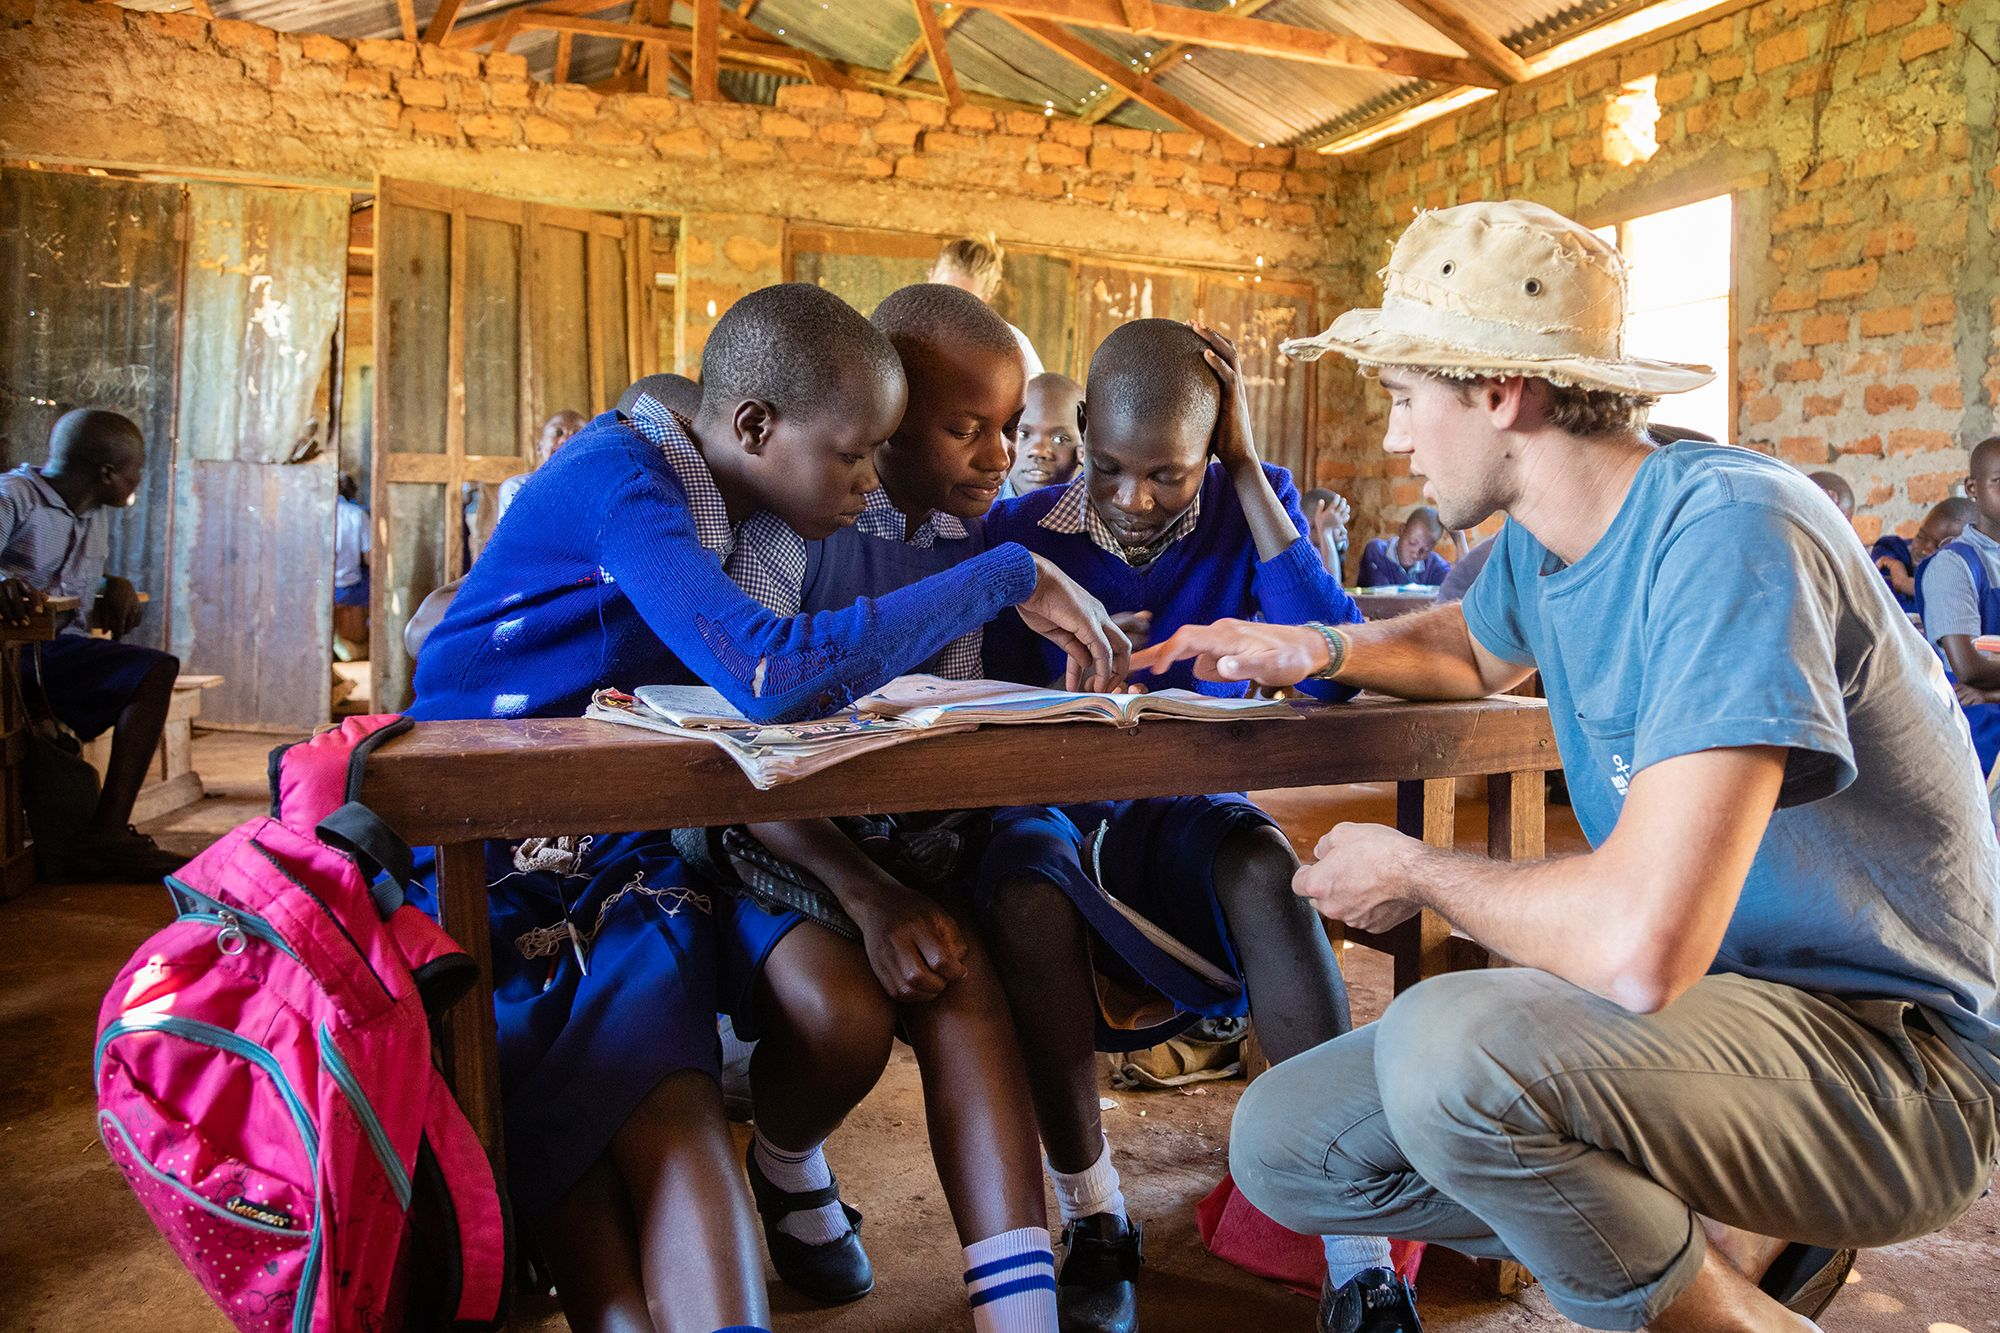 A student teaching several local children on a field study in Tanzania.